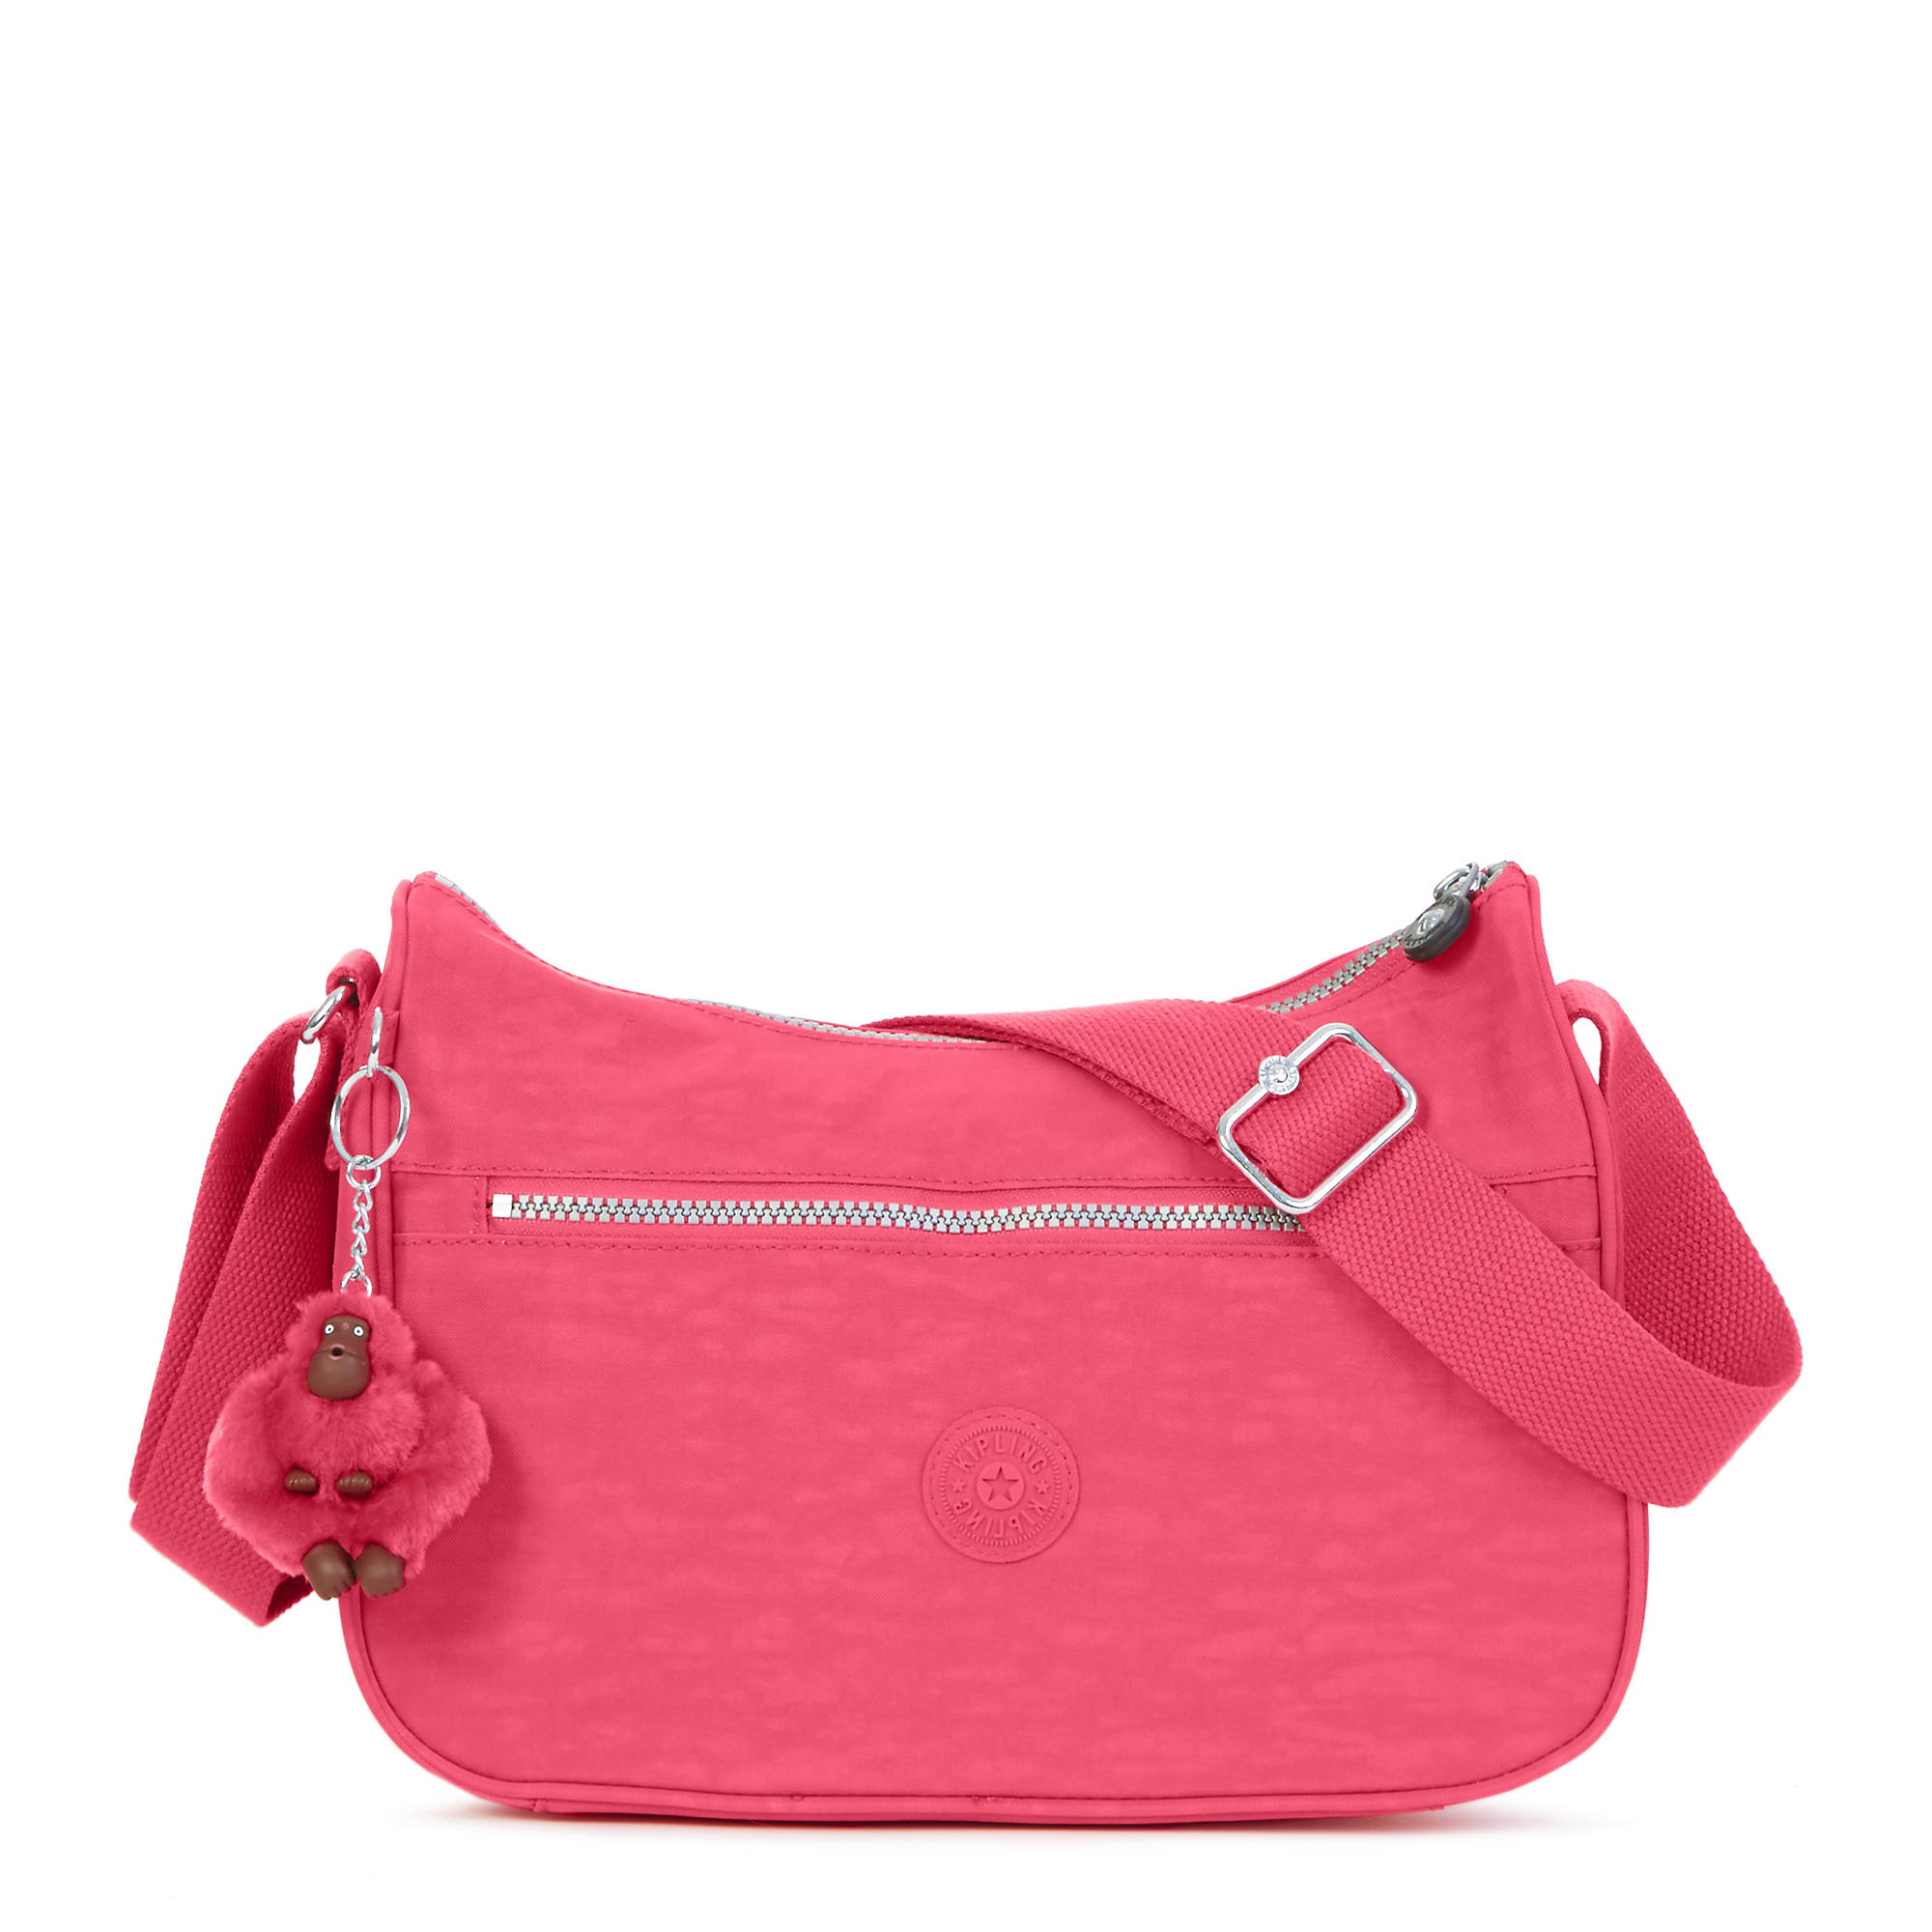 Sally Handbag Vibrant Pink Large